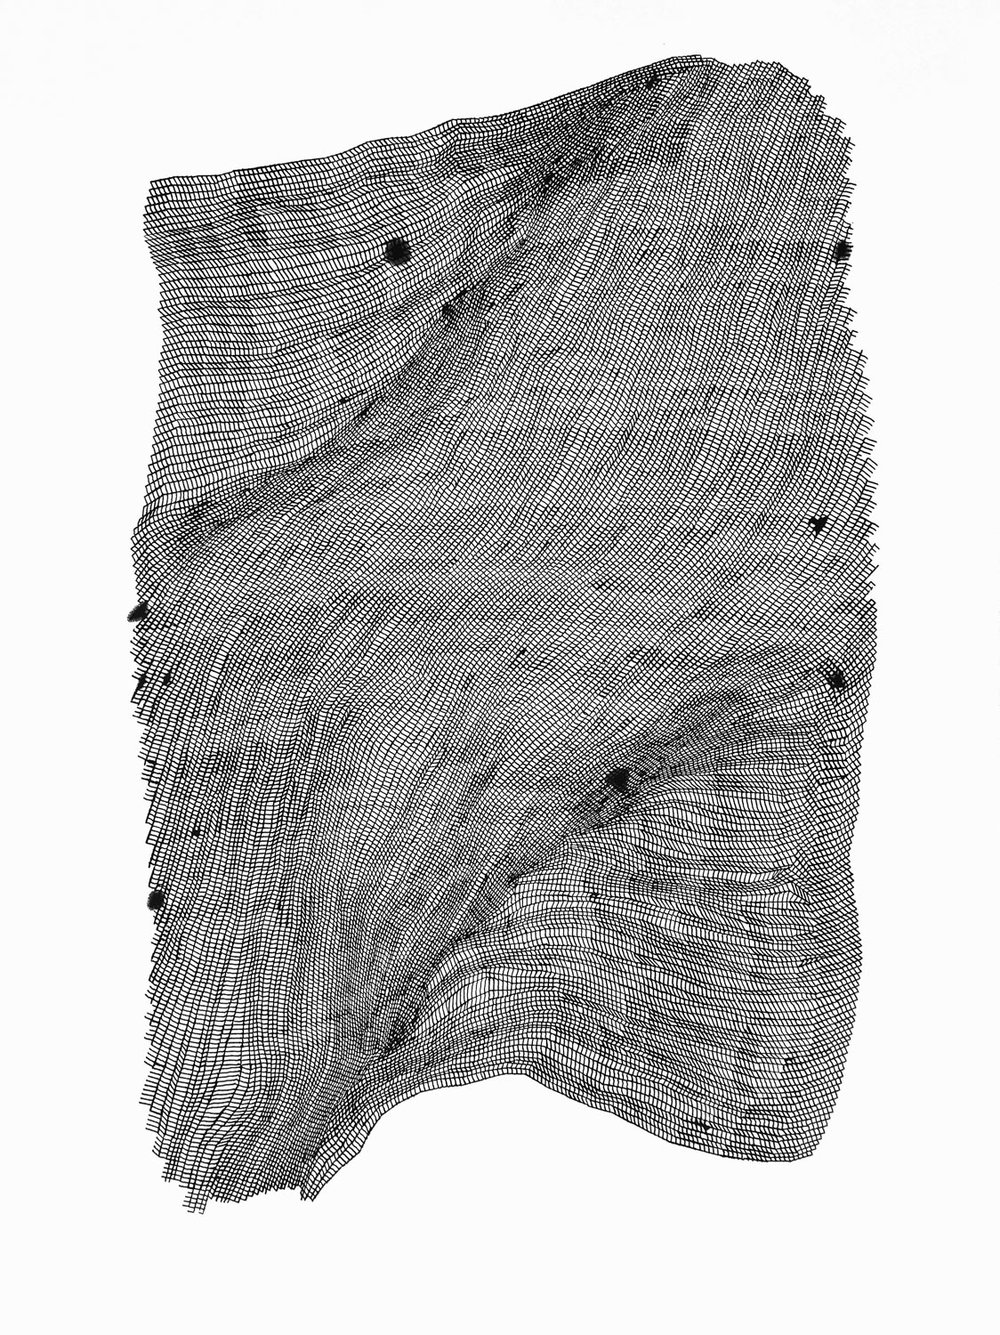 Zigzags 4 ,  2016   ink on 140 lb hot press watercolor paper 30 x 22 in (76.2 x 55.9 cm)